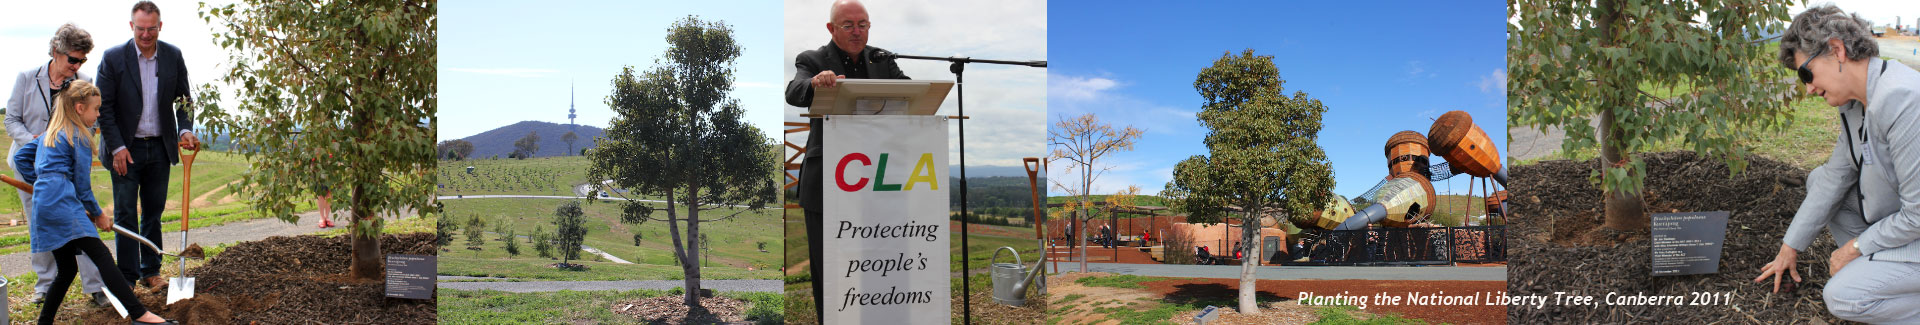 Nov 2019 CLArion newsletter: At last, the tide of repressive laws appears to have turned – now for rebalancing liberties